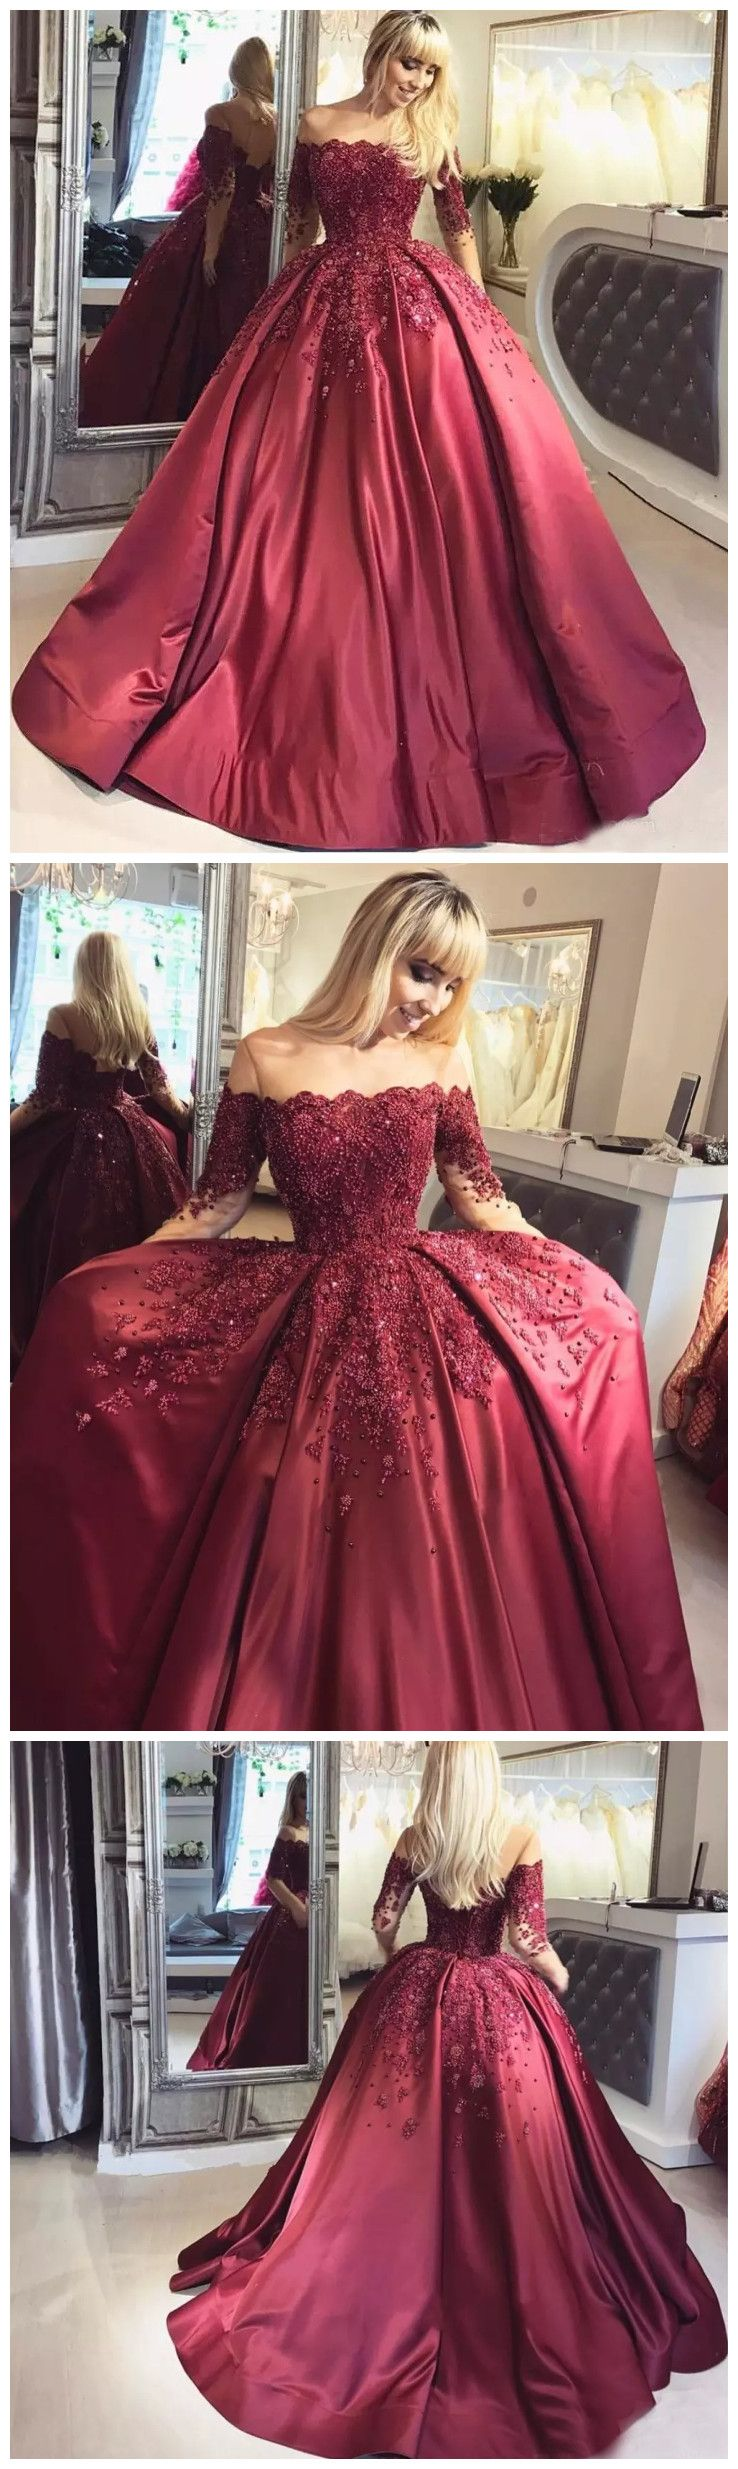 Chic ball gowns burgundy offtheshoulder half sleeve satin chic